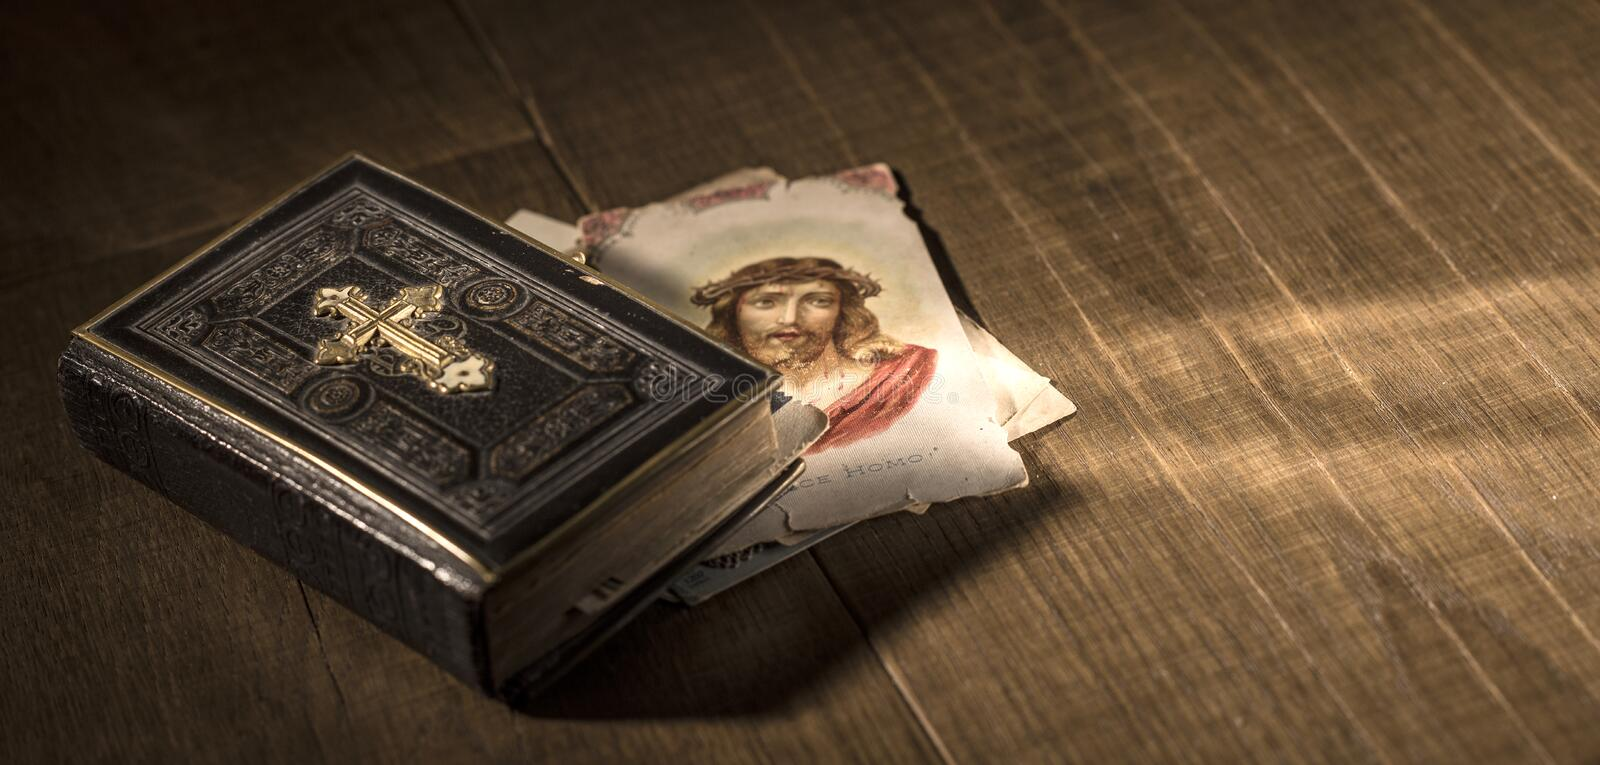 Sacred bible and Holy card with Jesus Christ image on a desk stock image